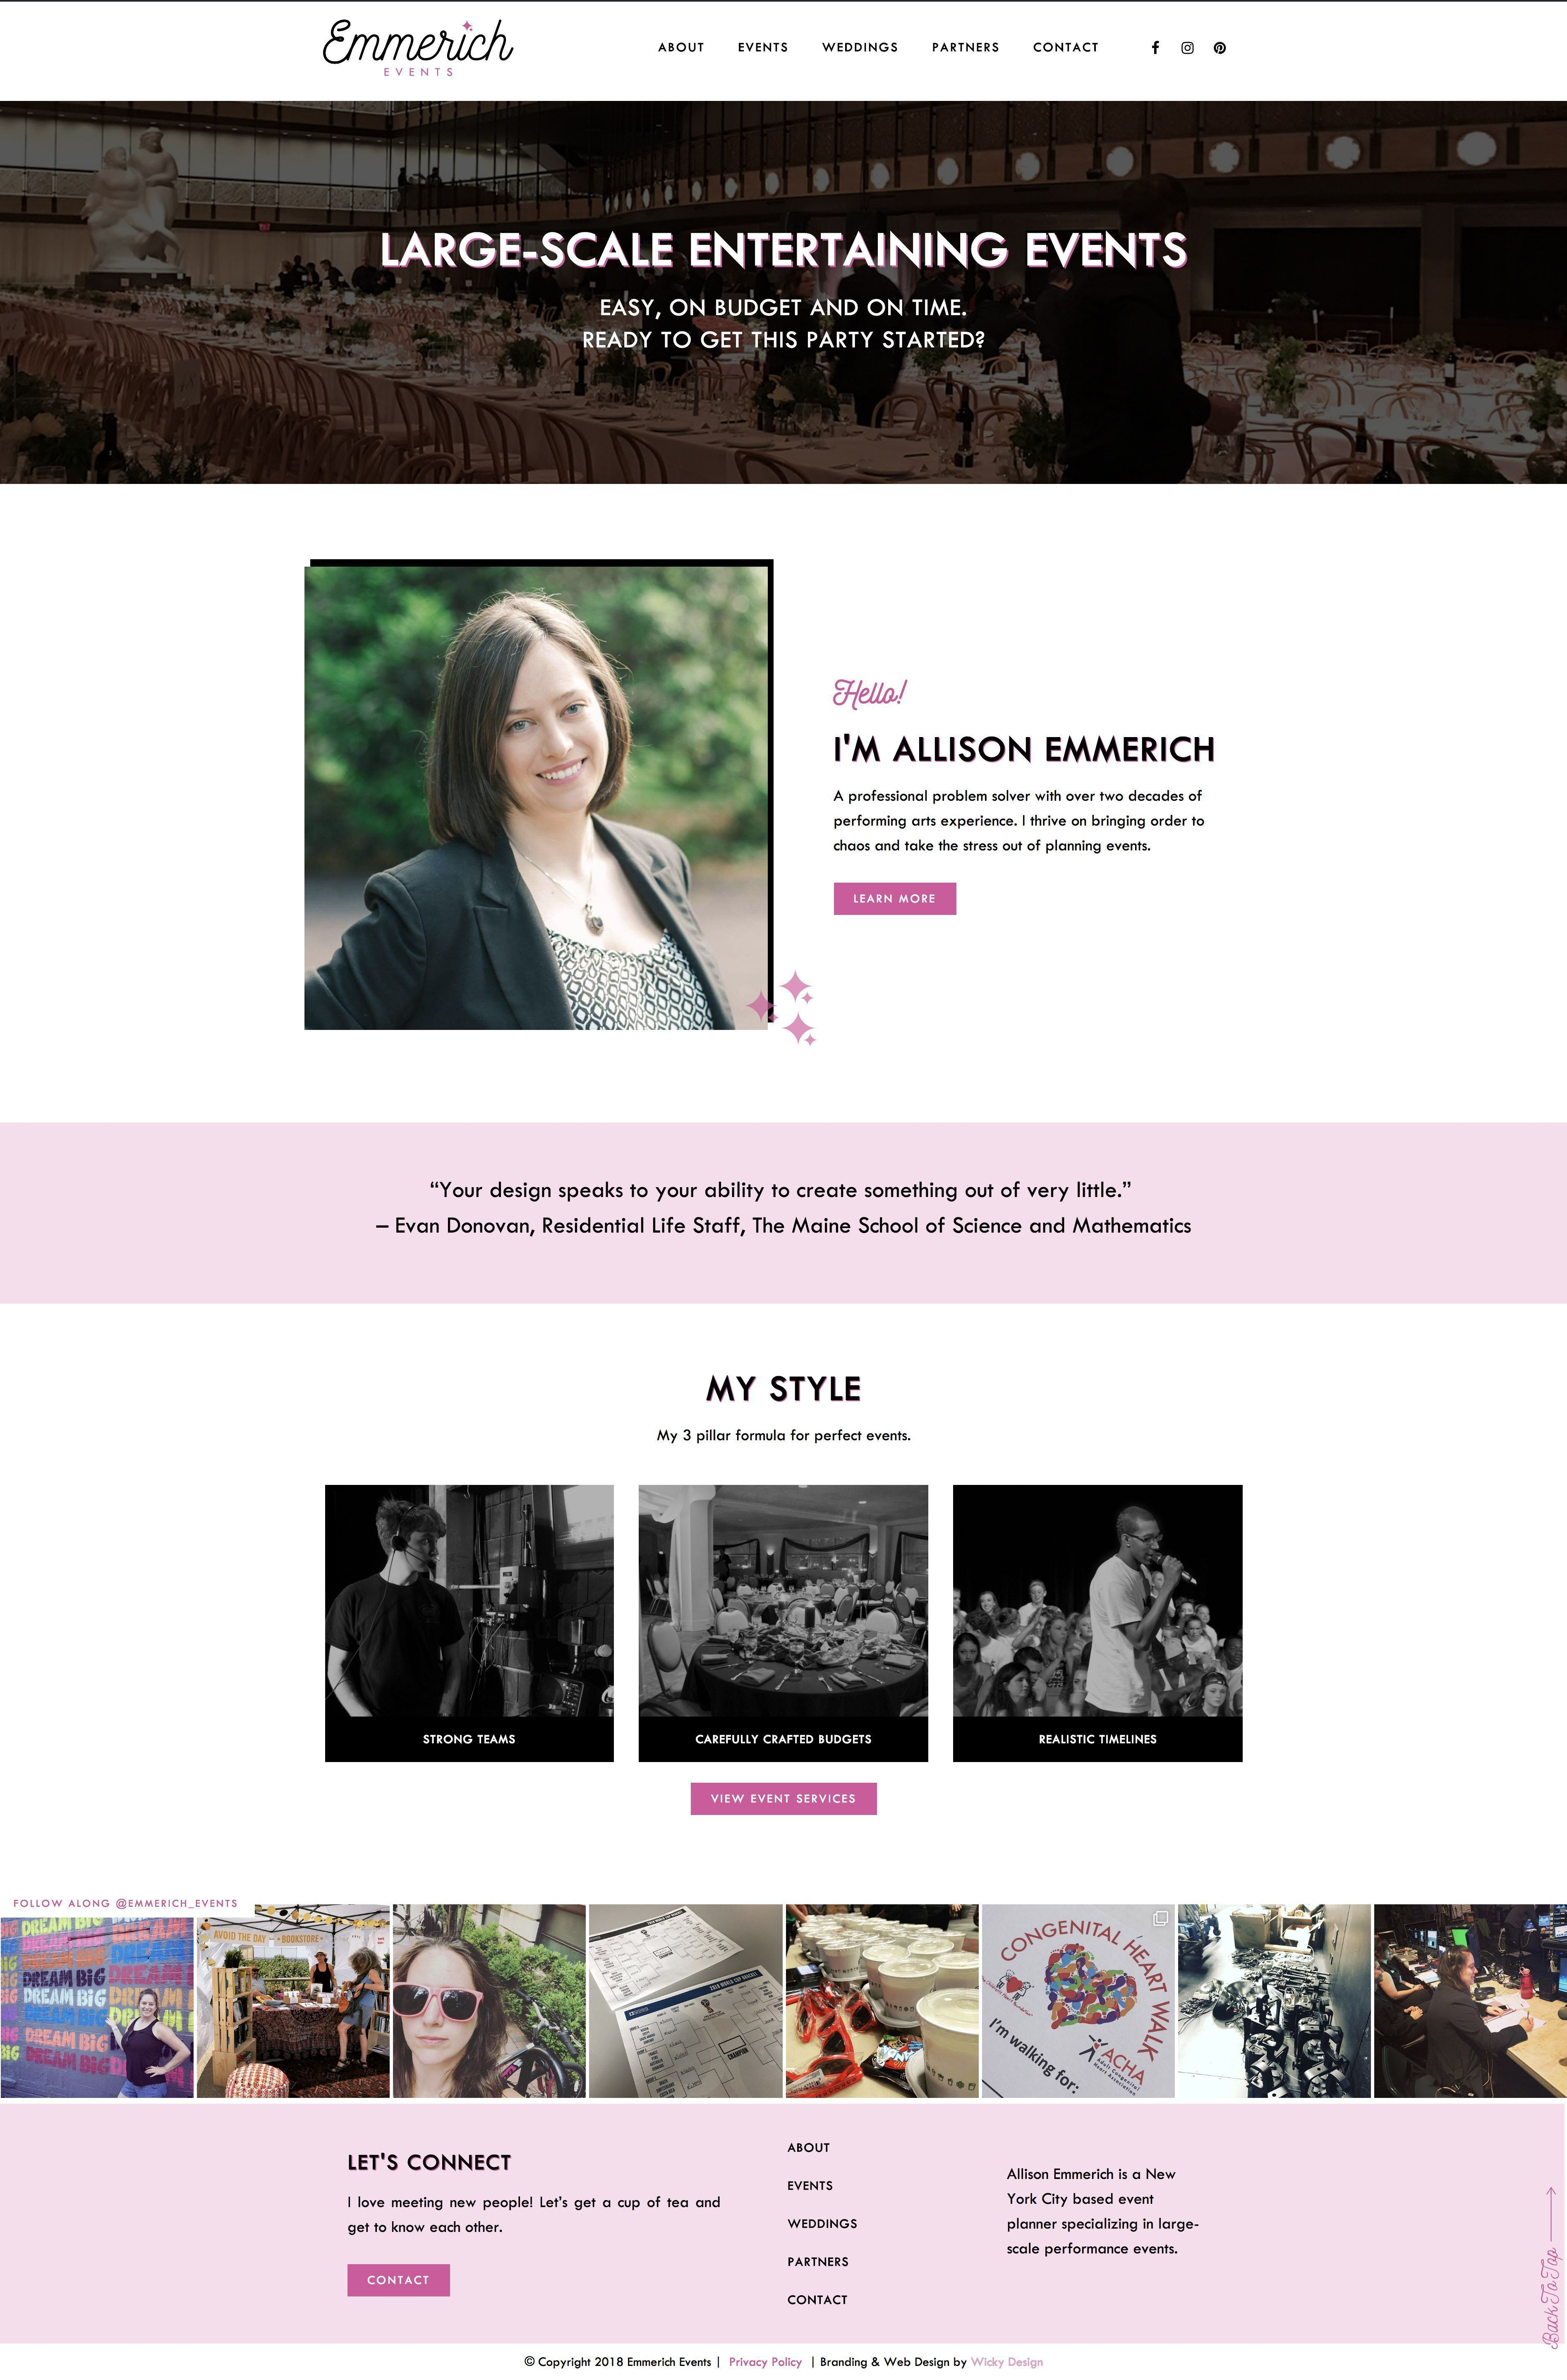 Web Design For Nyc Event Manager Emmerich Events Wicky Design Event Management Web Design Event